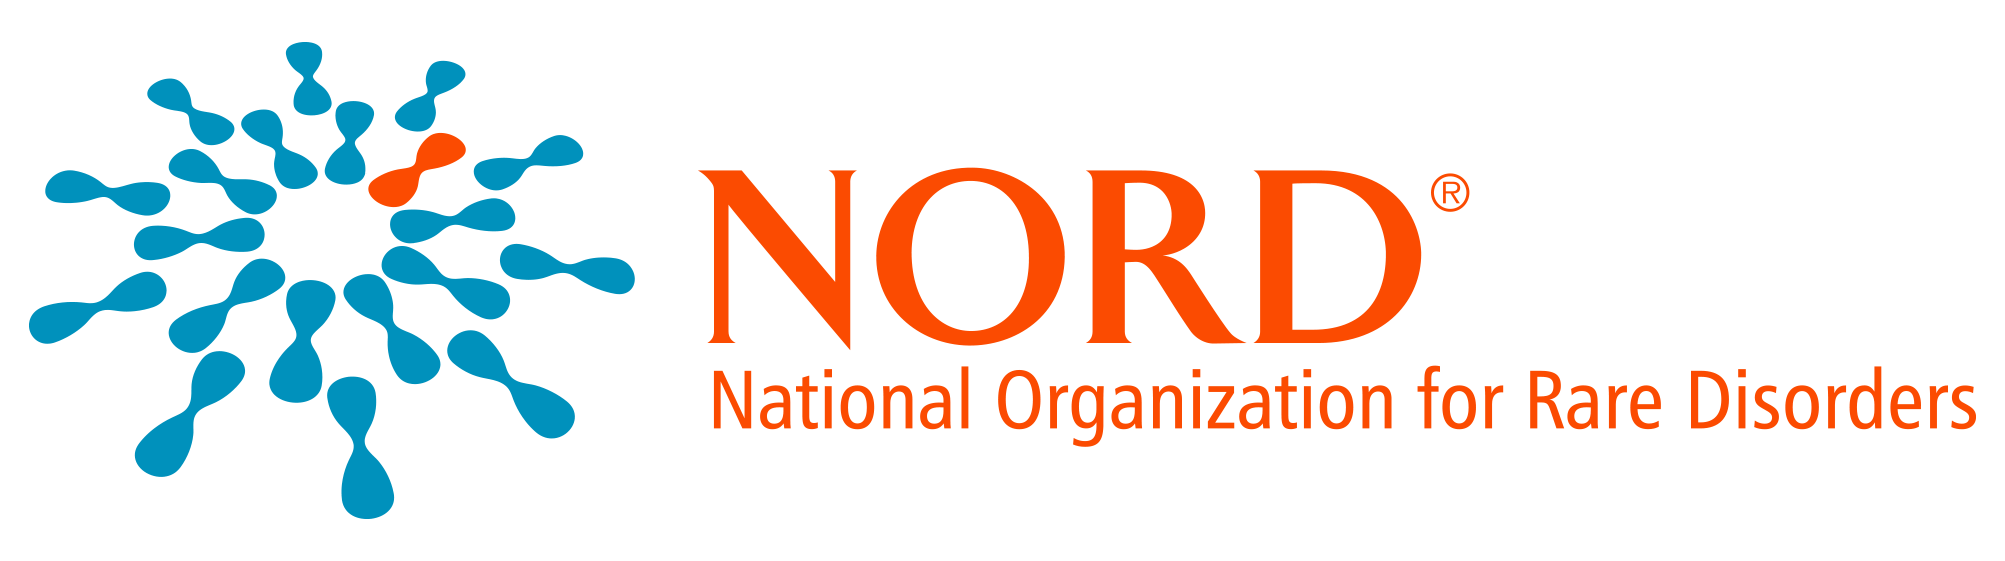 NORD (National Organization for Rare Diseases)